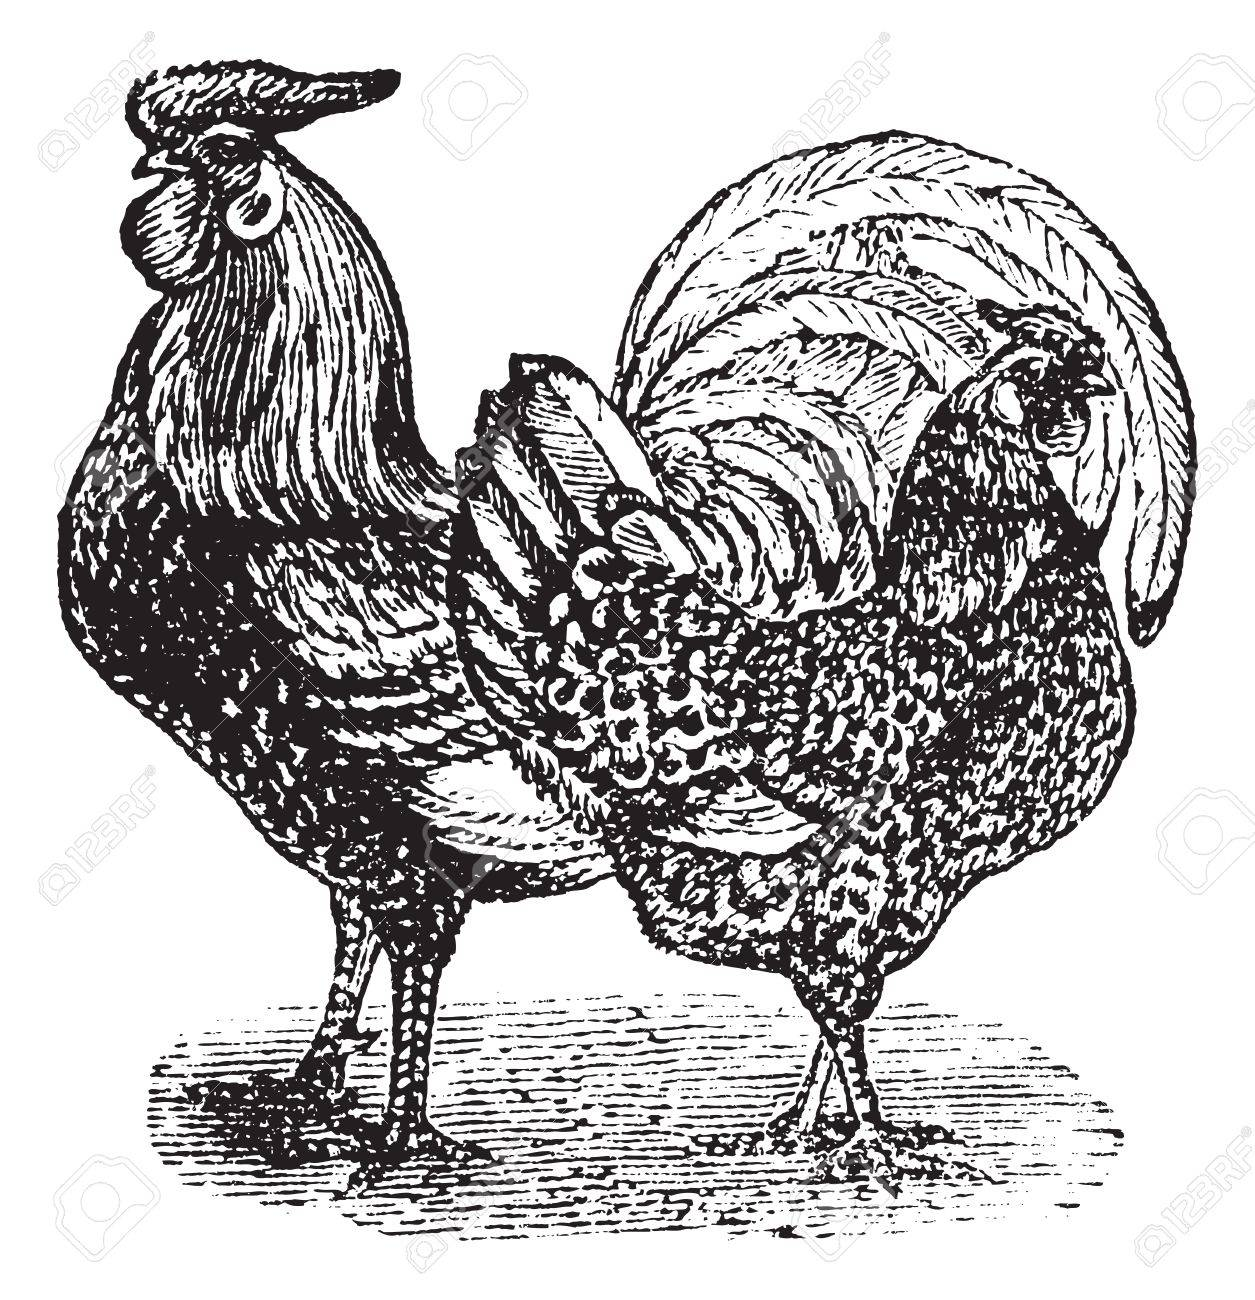 Male and female of Silver-Spangled Hamburg (chicken), vintage